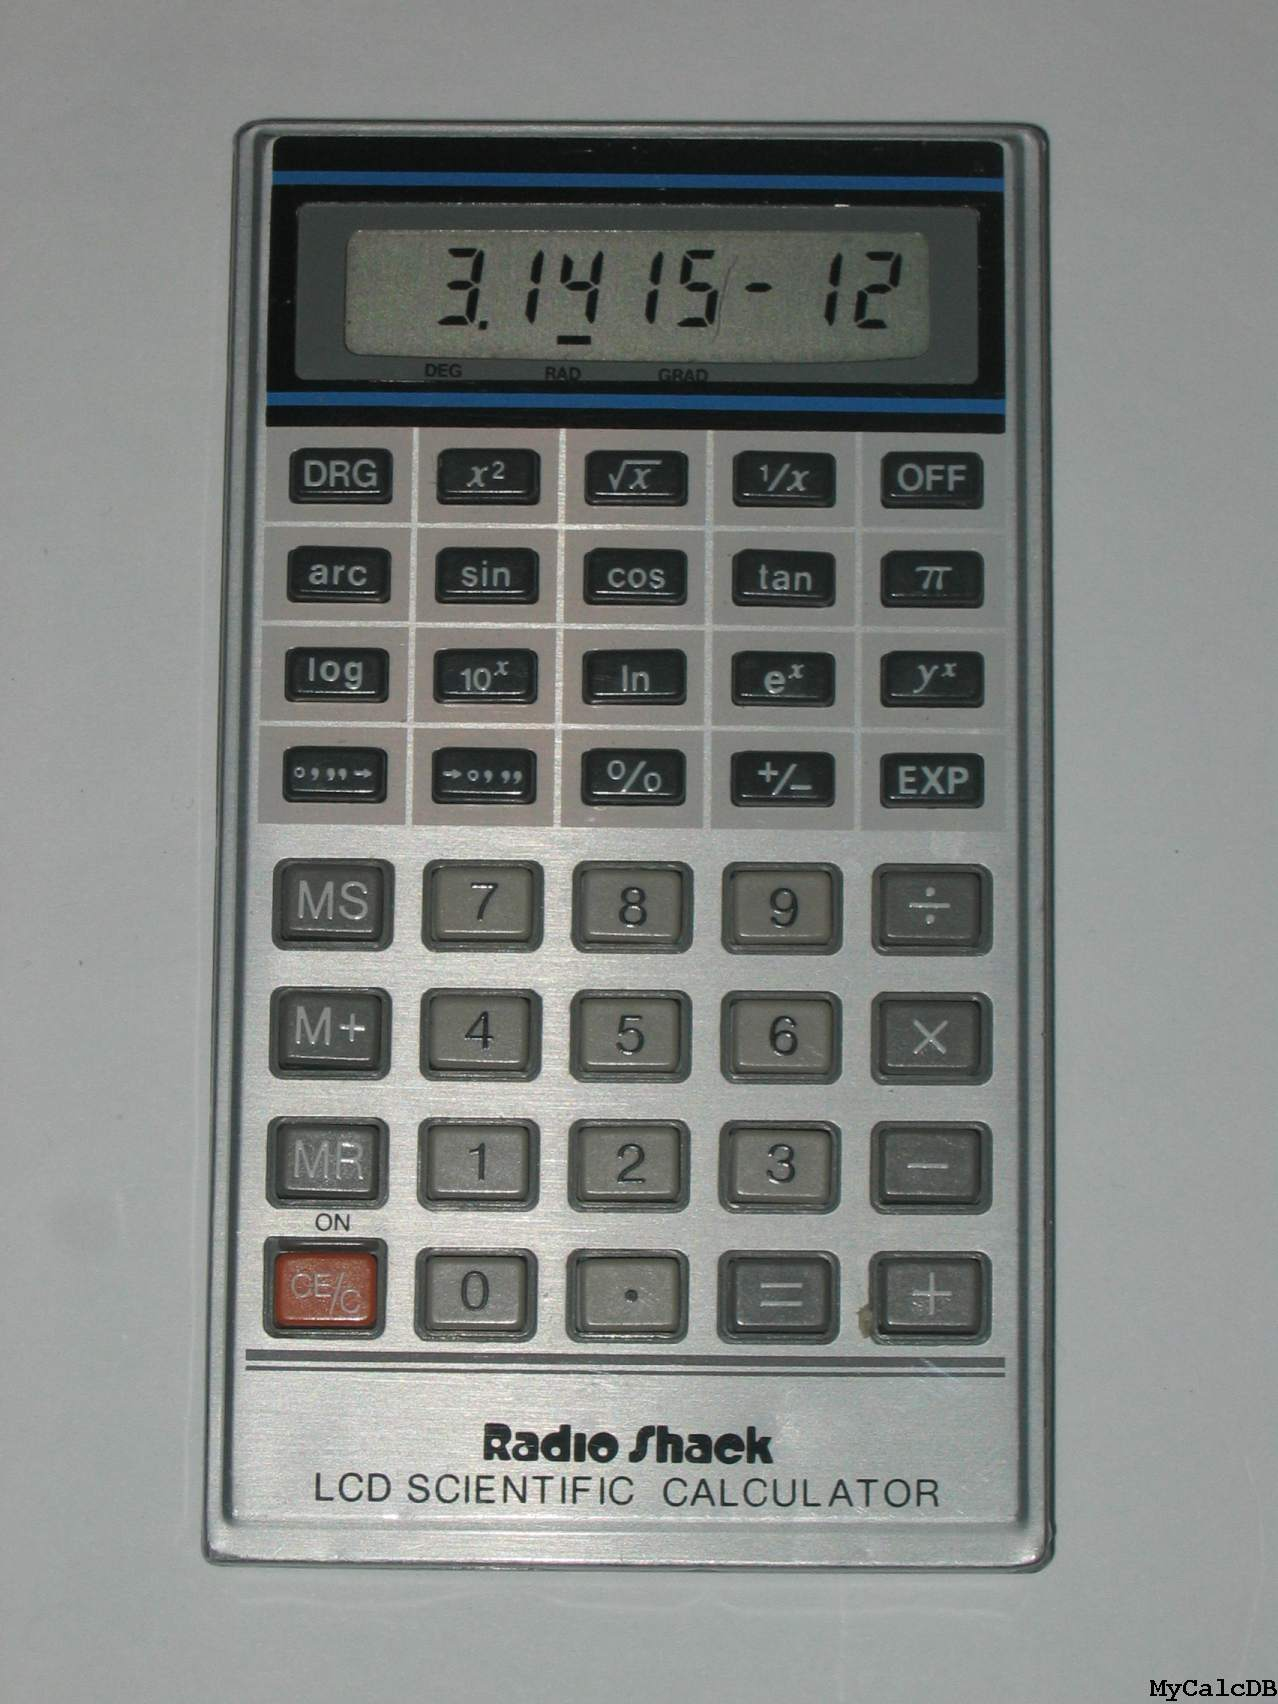 Radio Shack EC-4008